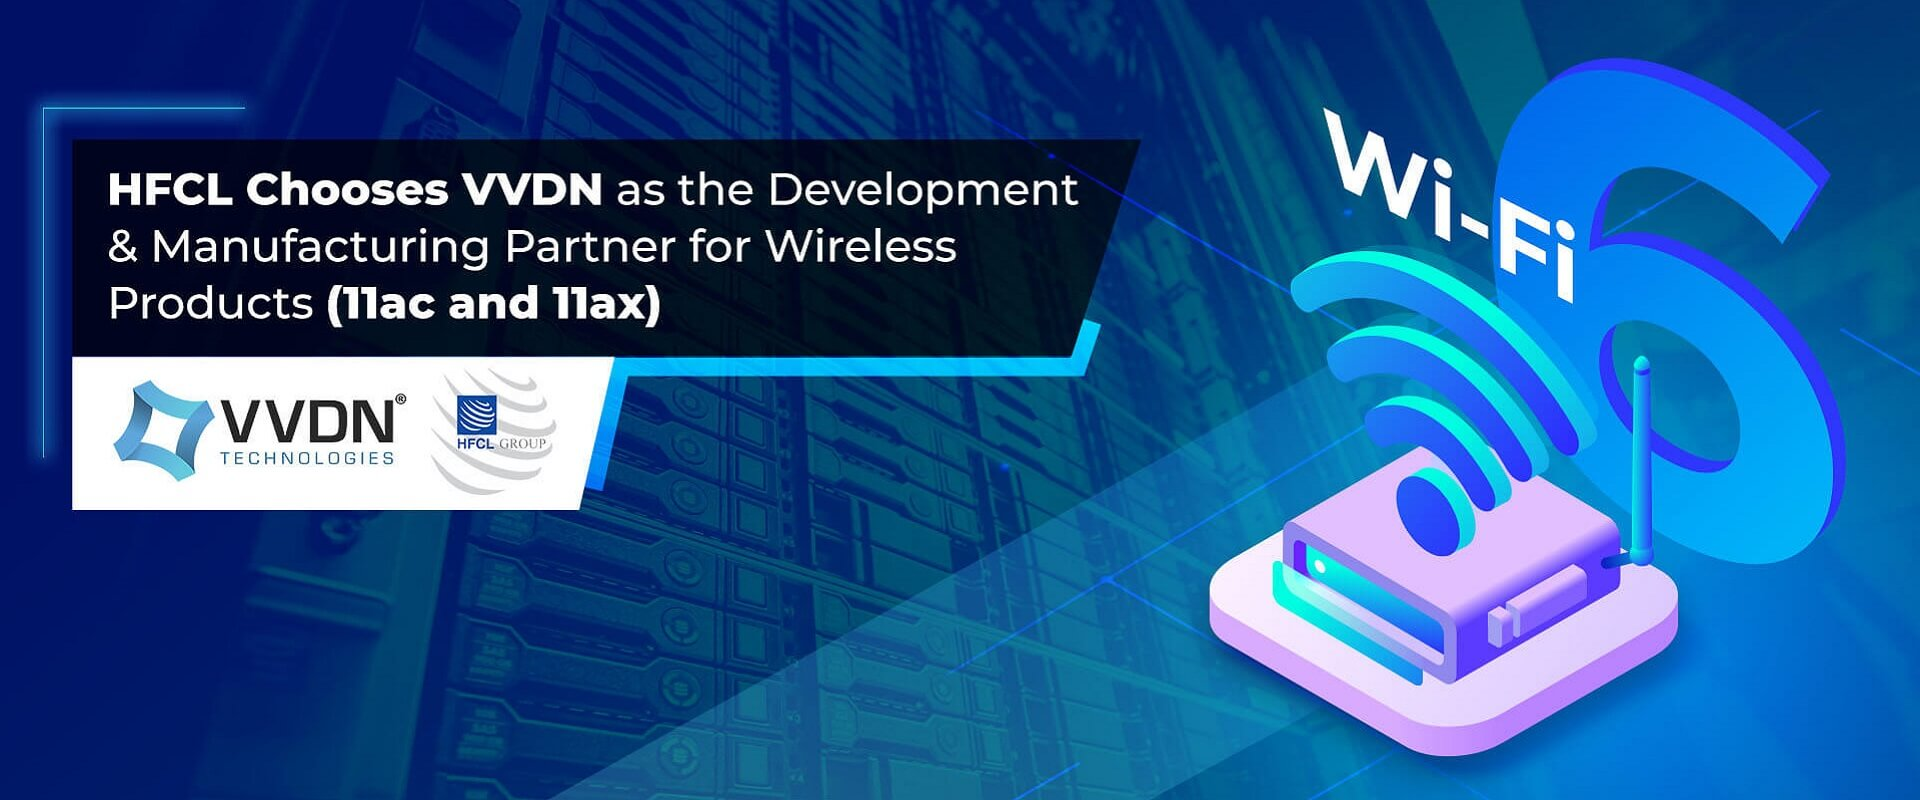 HFCL Chooses WDN as the Development & Manufacturing Partner for Wireless Products (11ac and 11ax)